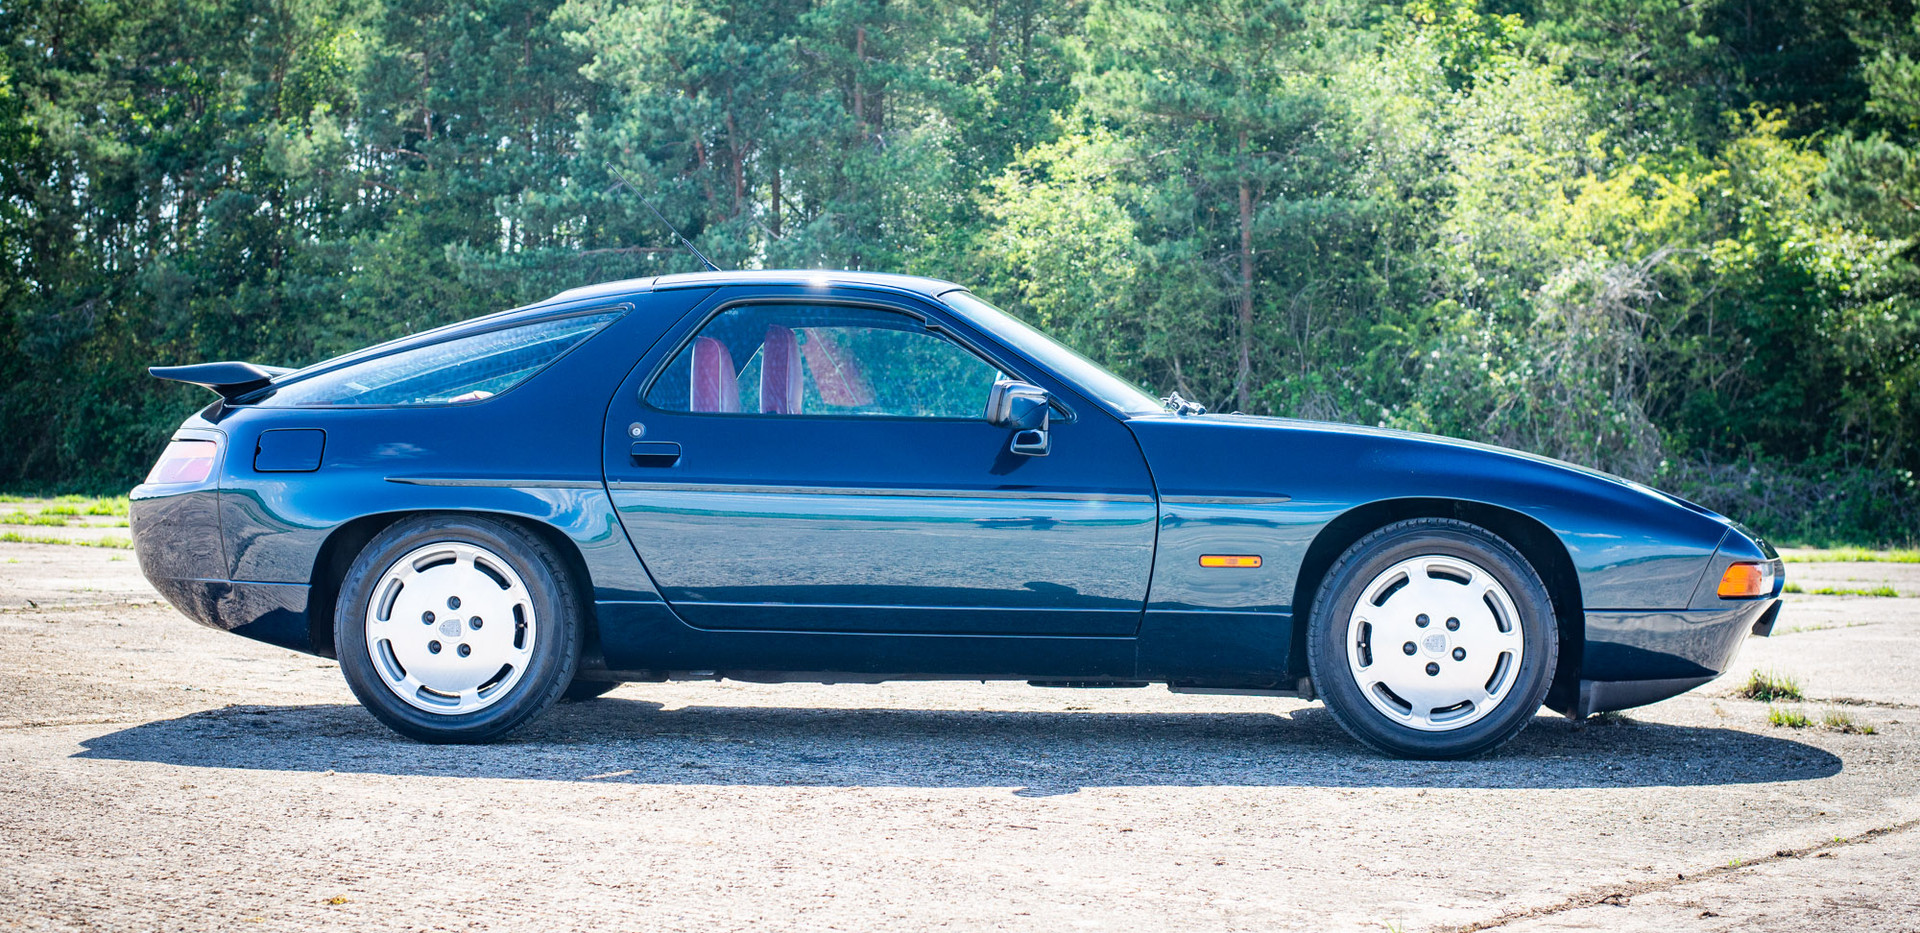 Porsche_928_ForSale Uk London-6.jpg